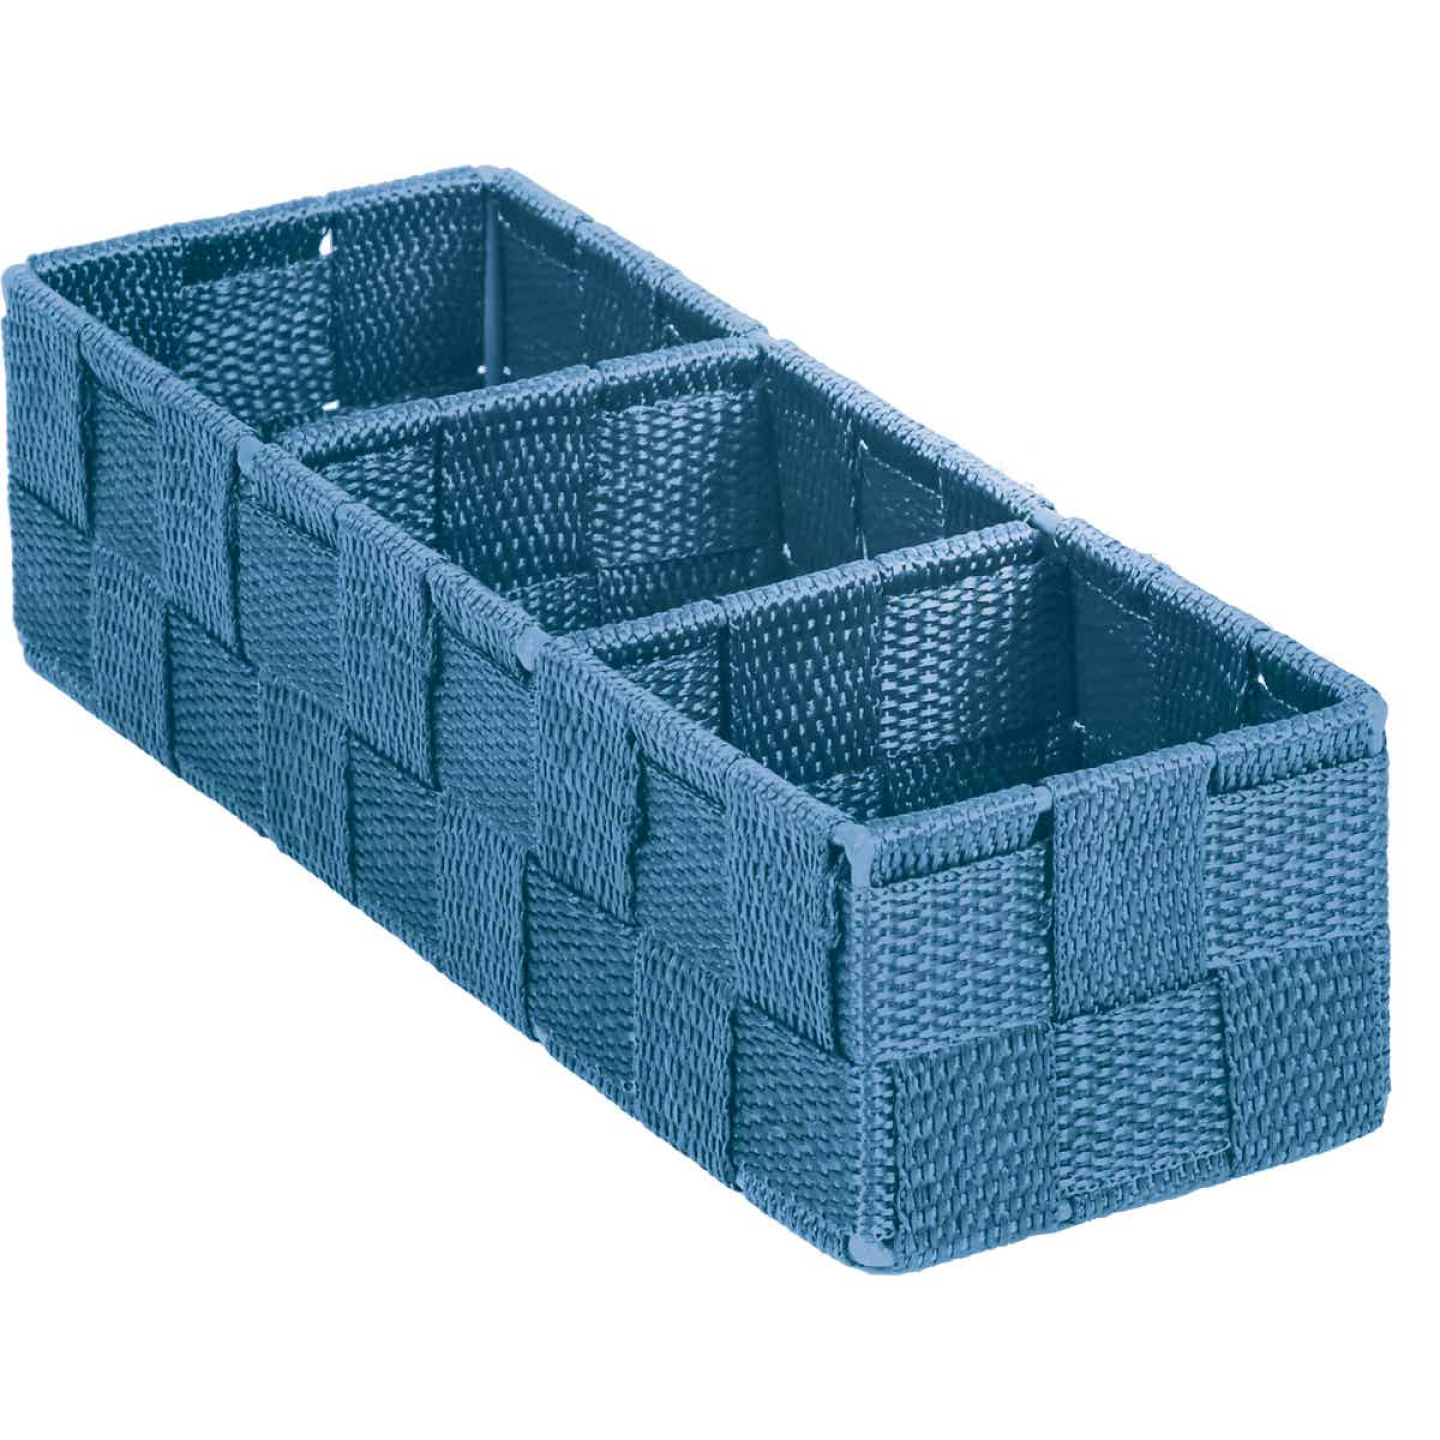 Home Impressions 3.25 In. W. x 2.25 In. H. x 9.5 In. L. Woven Storage Tray, Blue Image 1